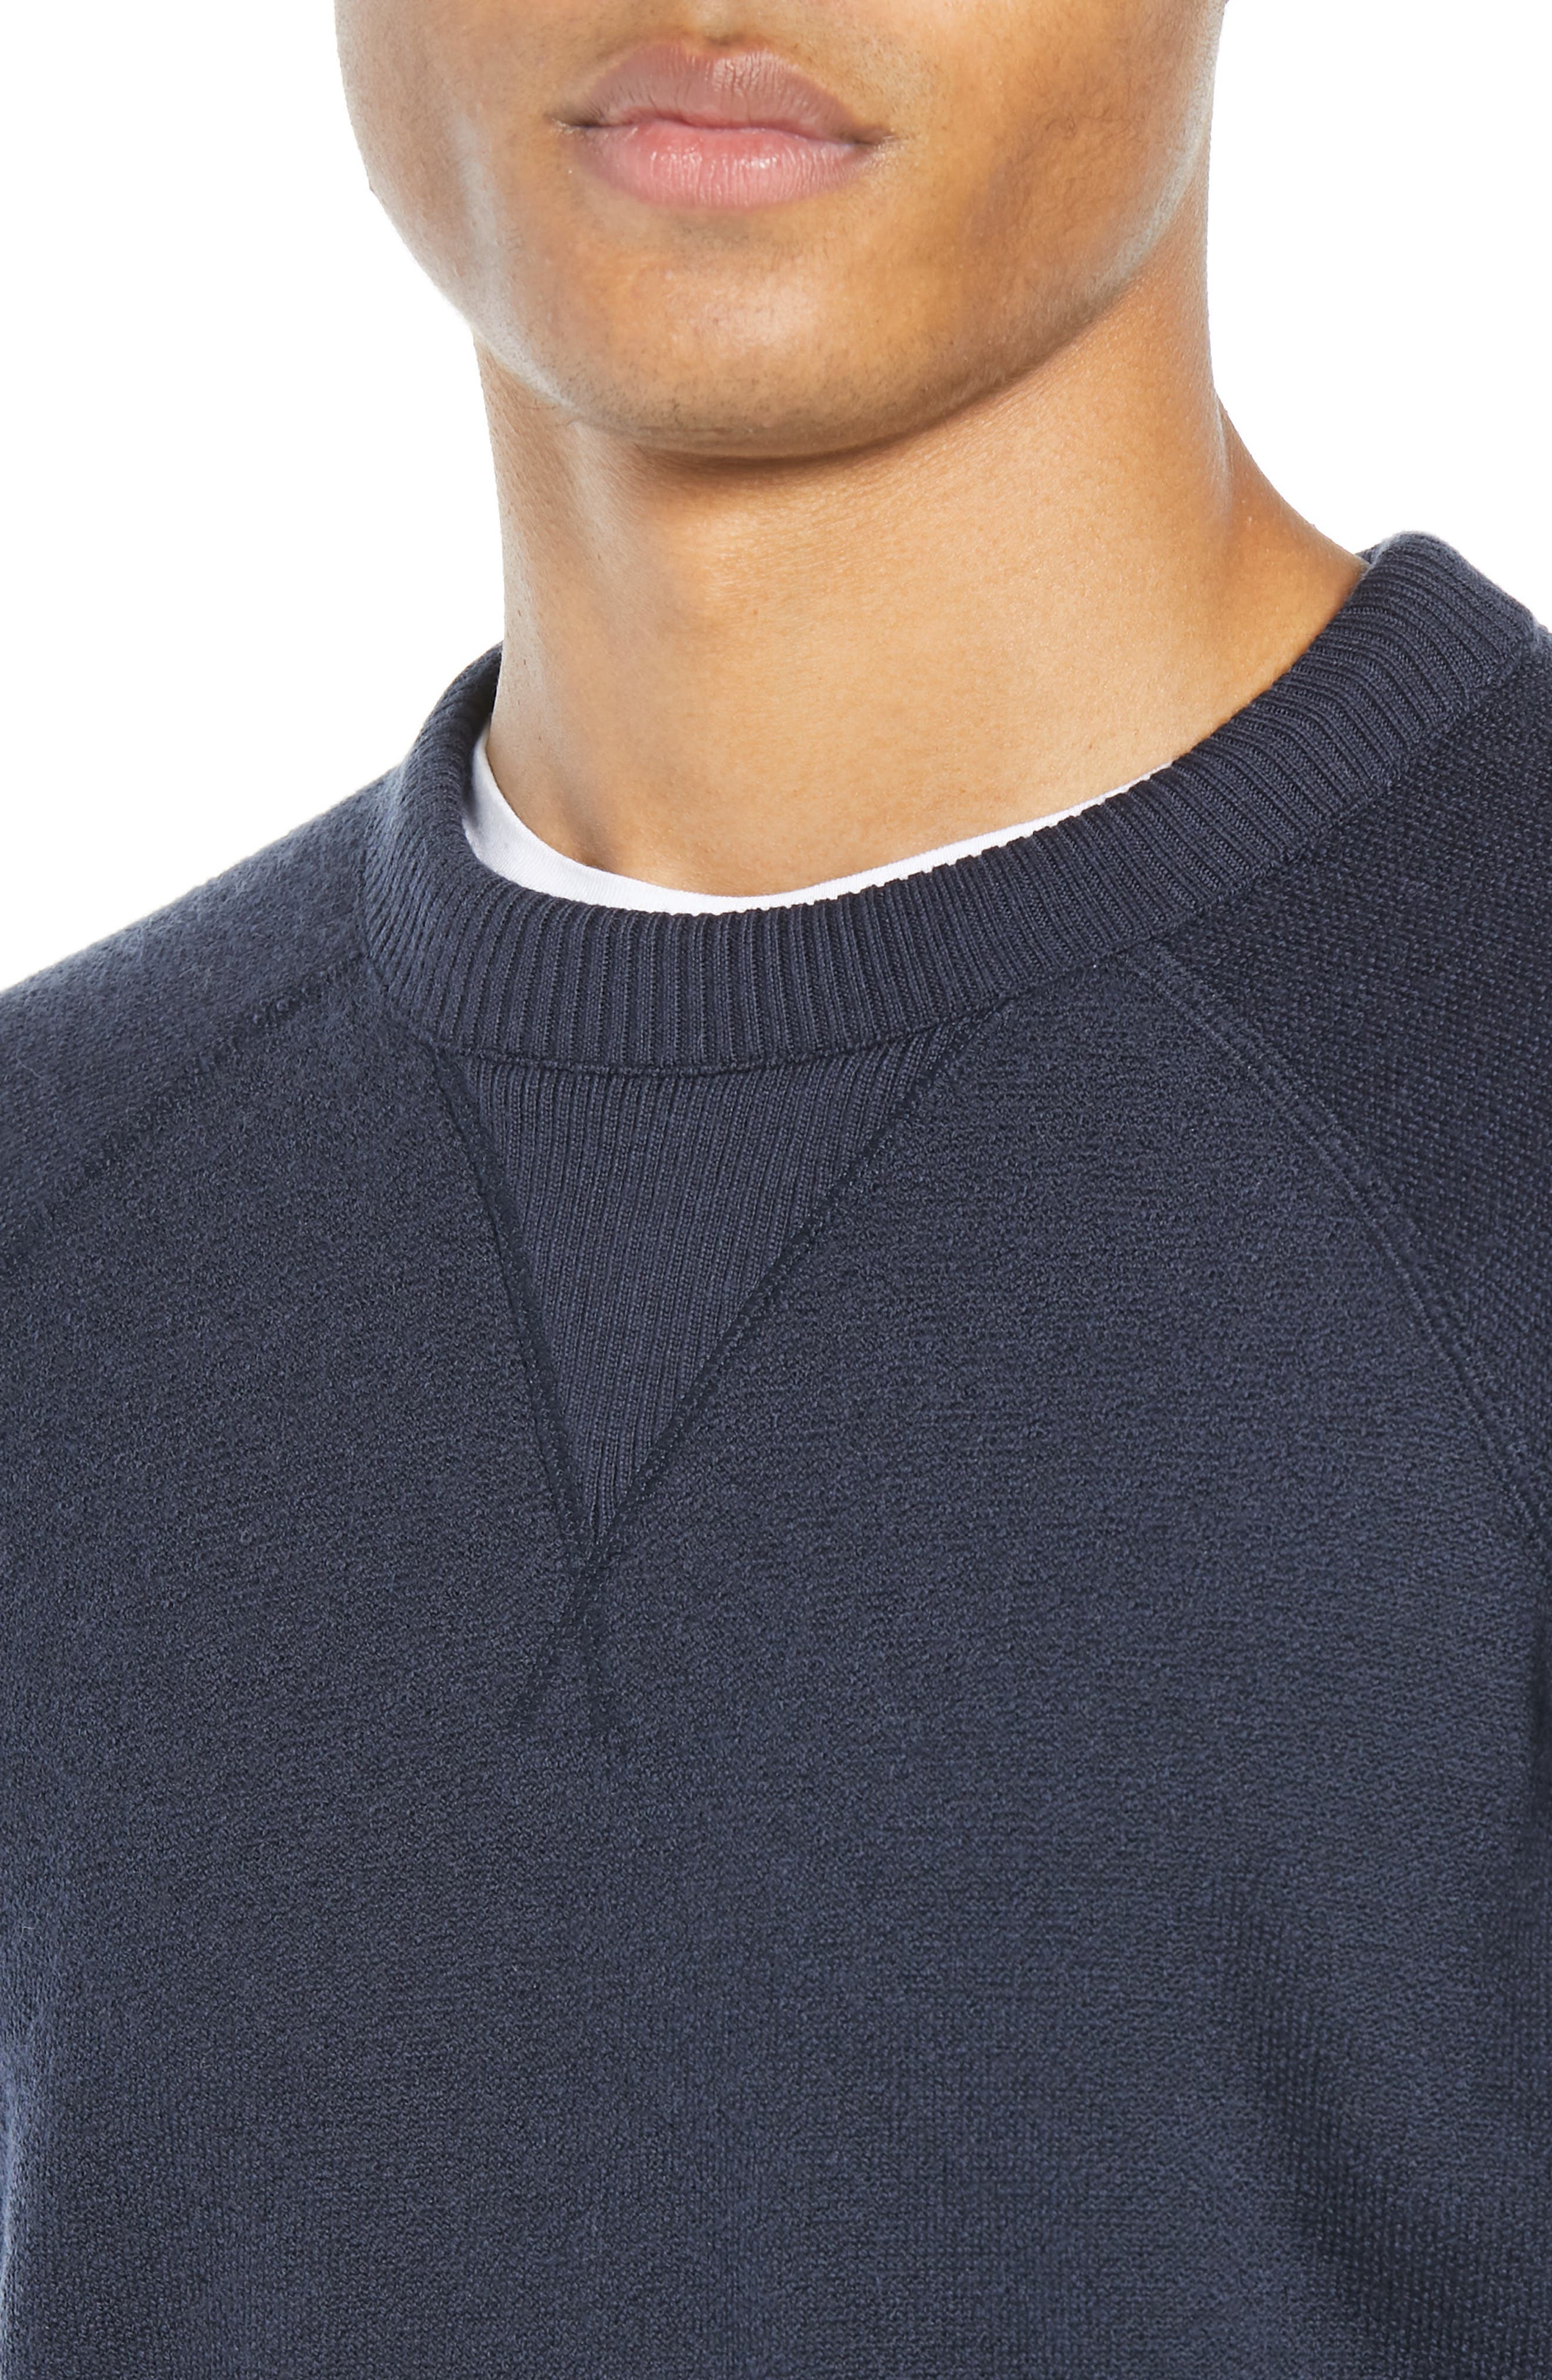 BEST MADE CO., The Merino Wool Fleece Crew Sweatshirt, Alternate thumbnail 5, color, 410